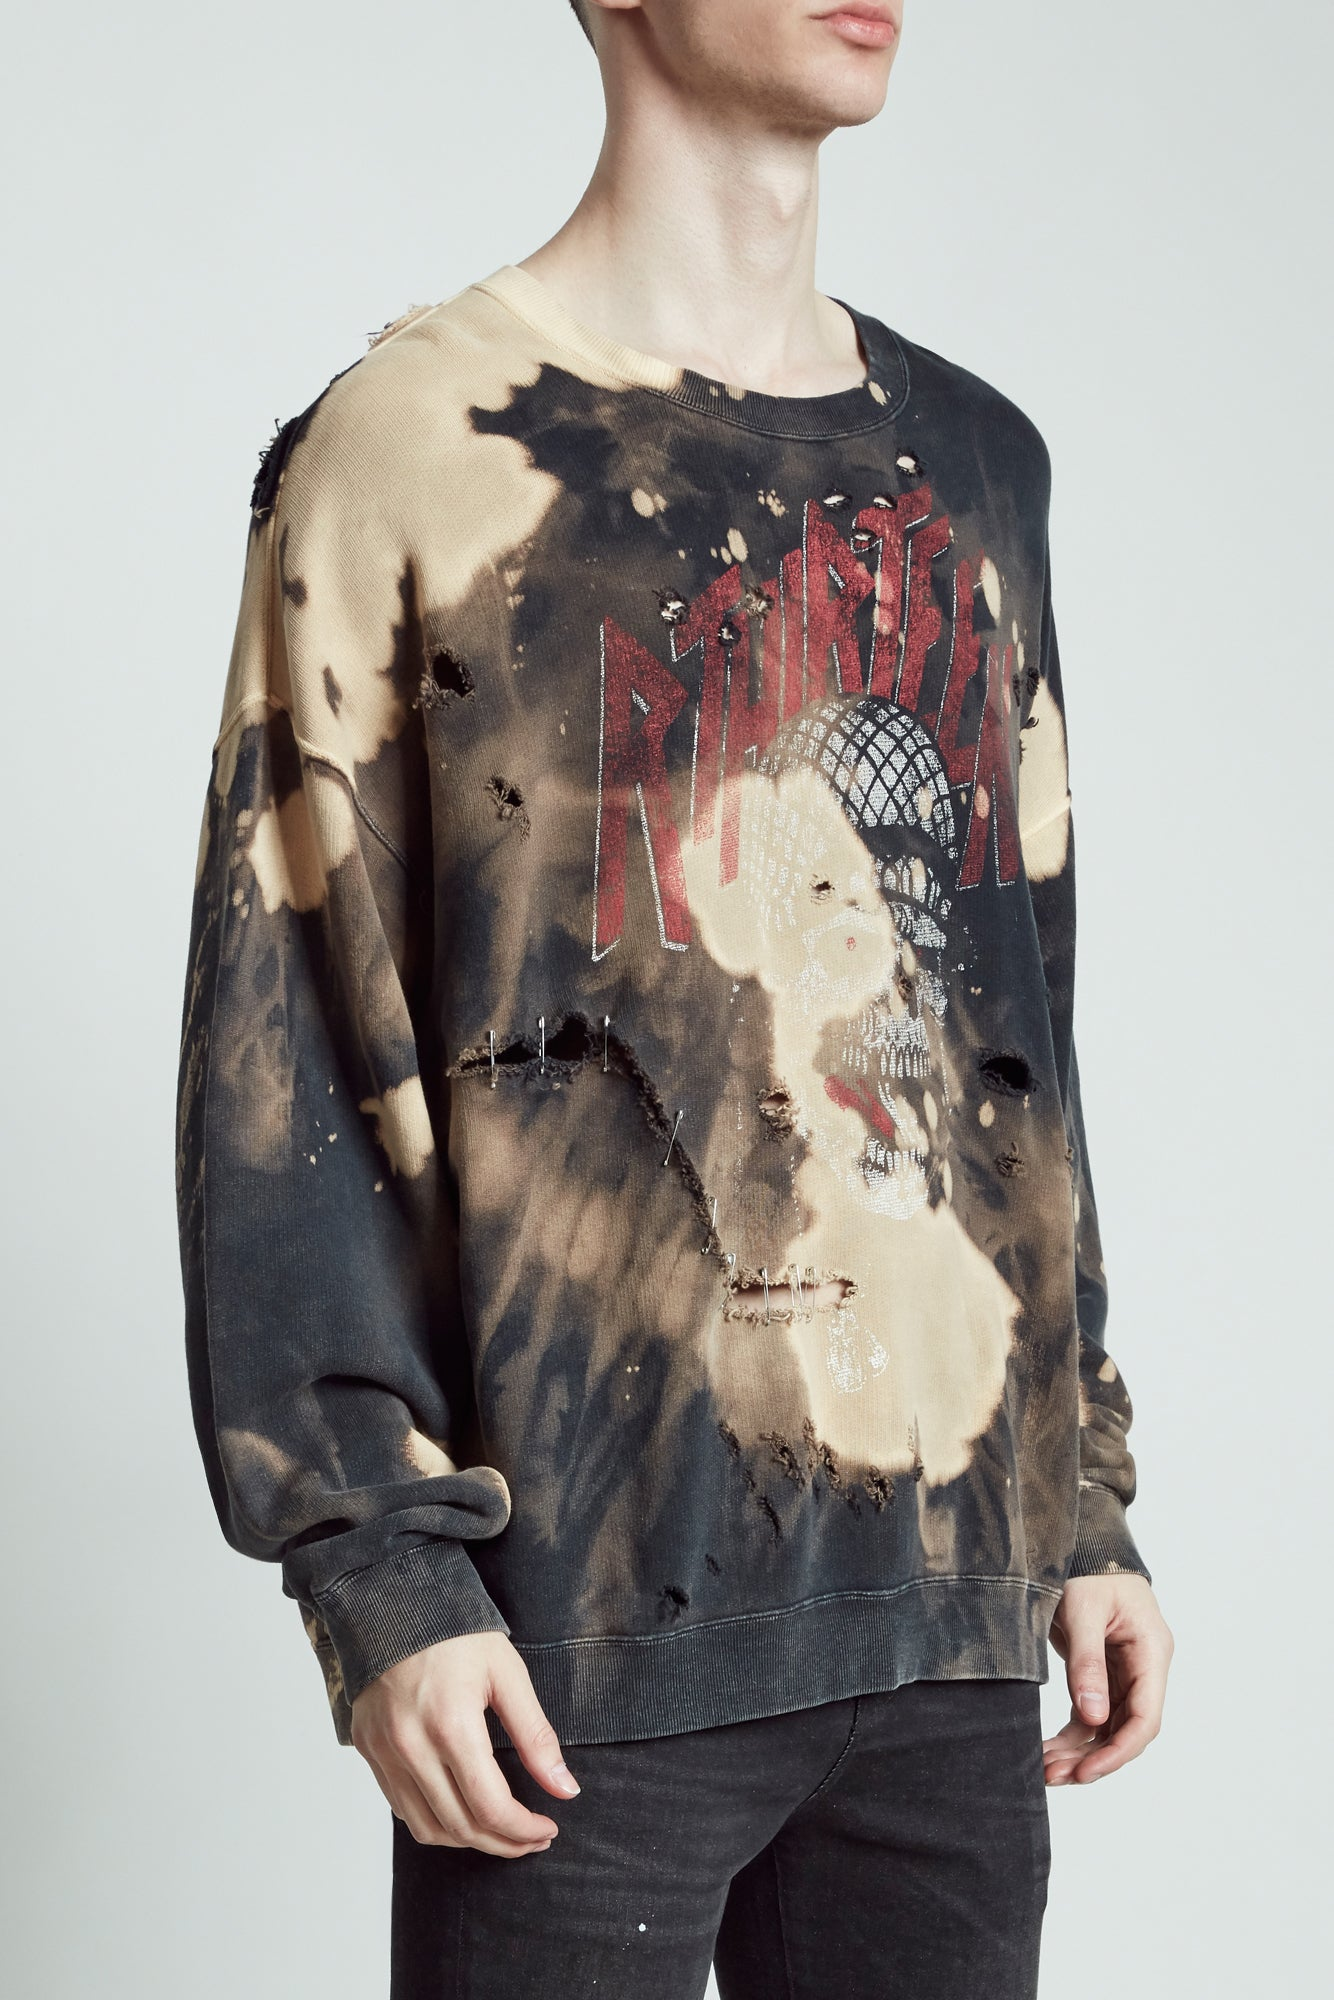 Battle Punk Oversized Crewneck